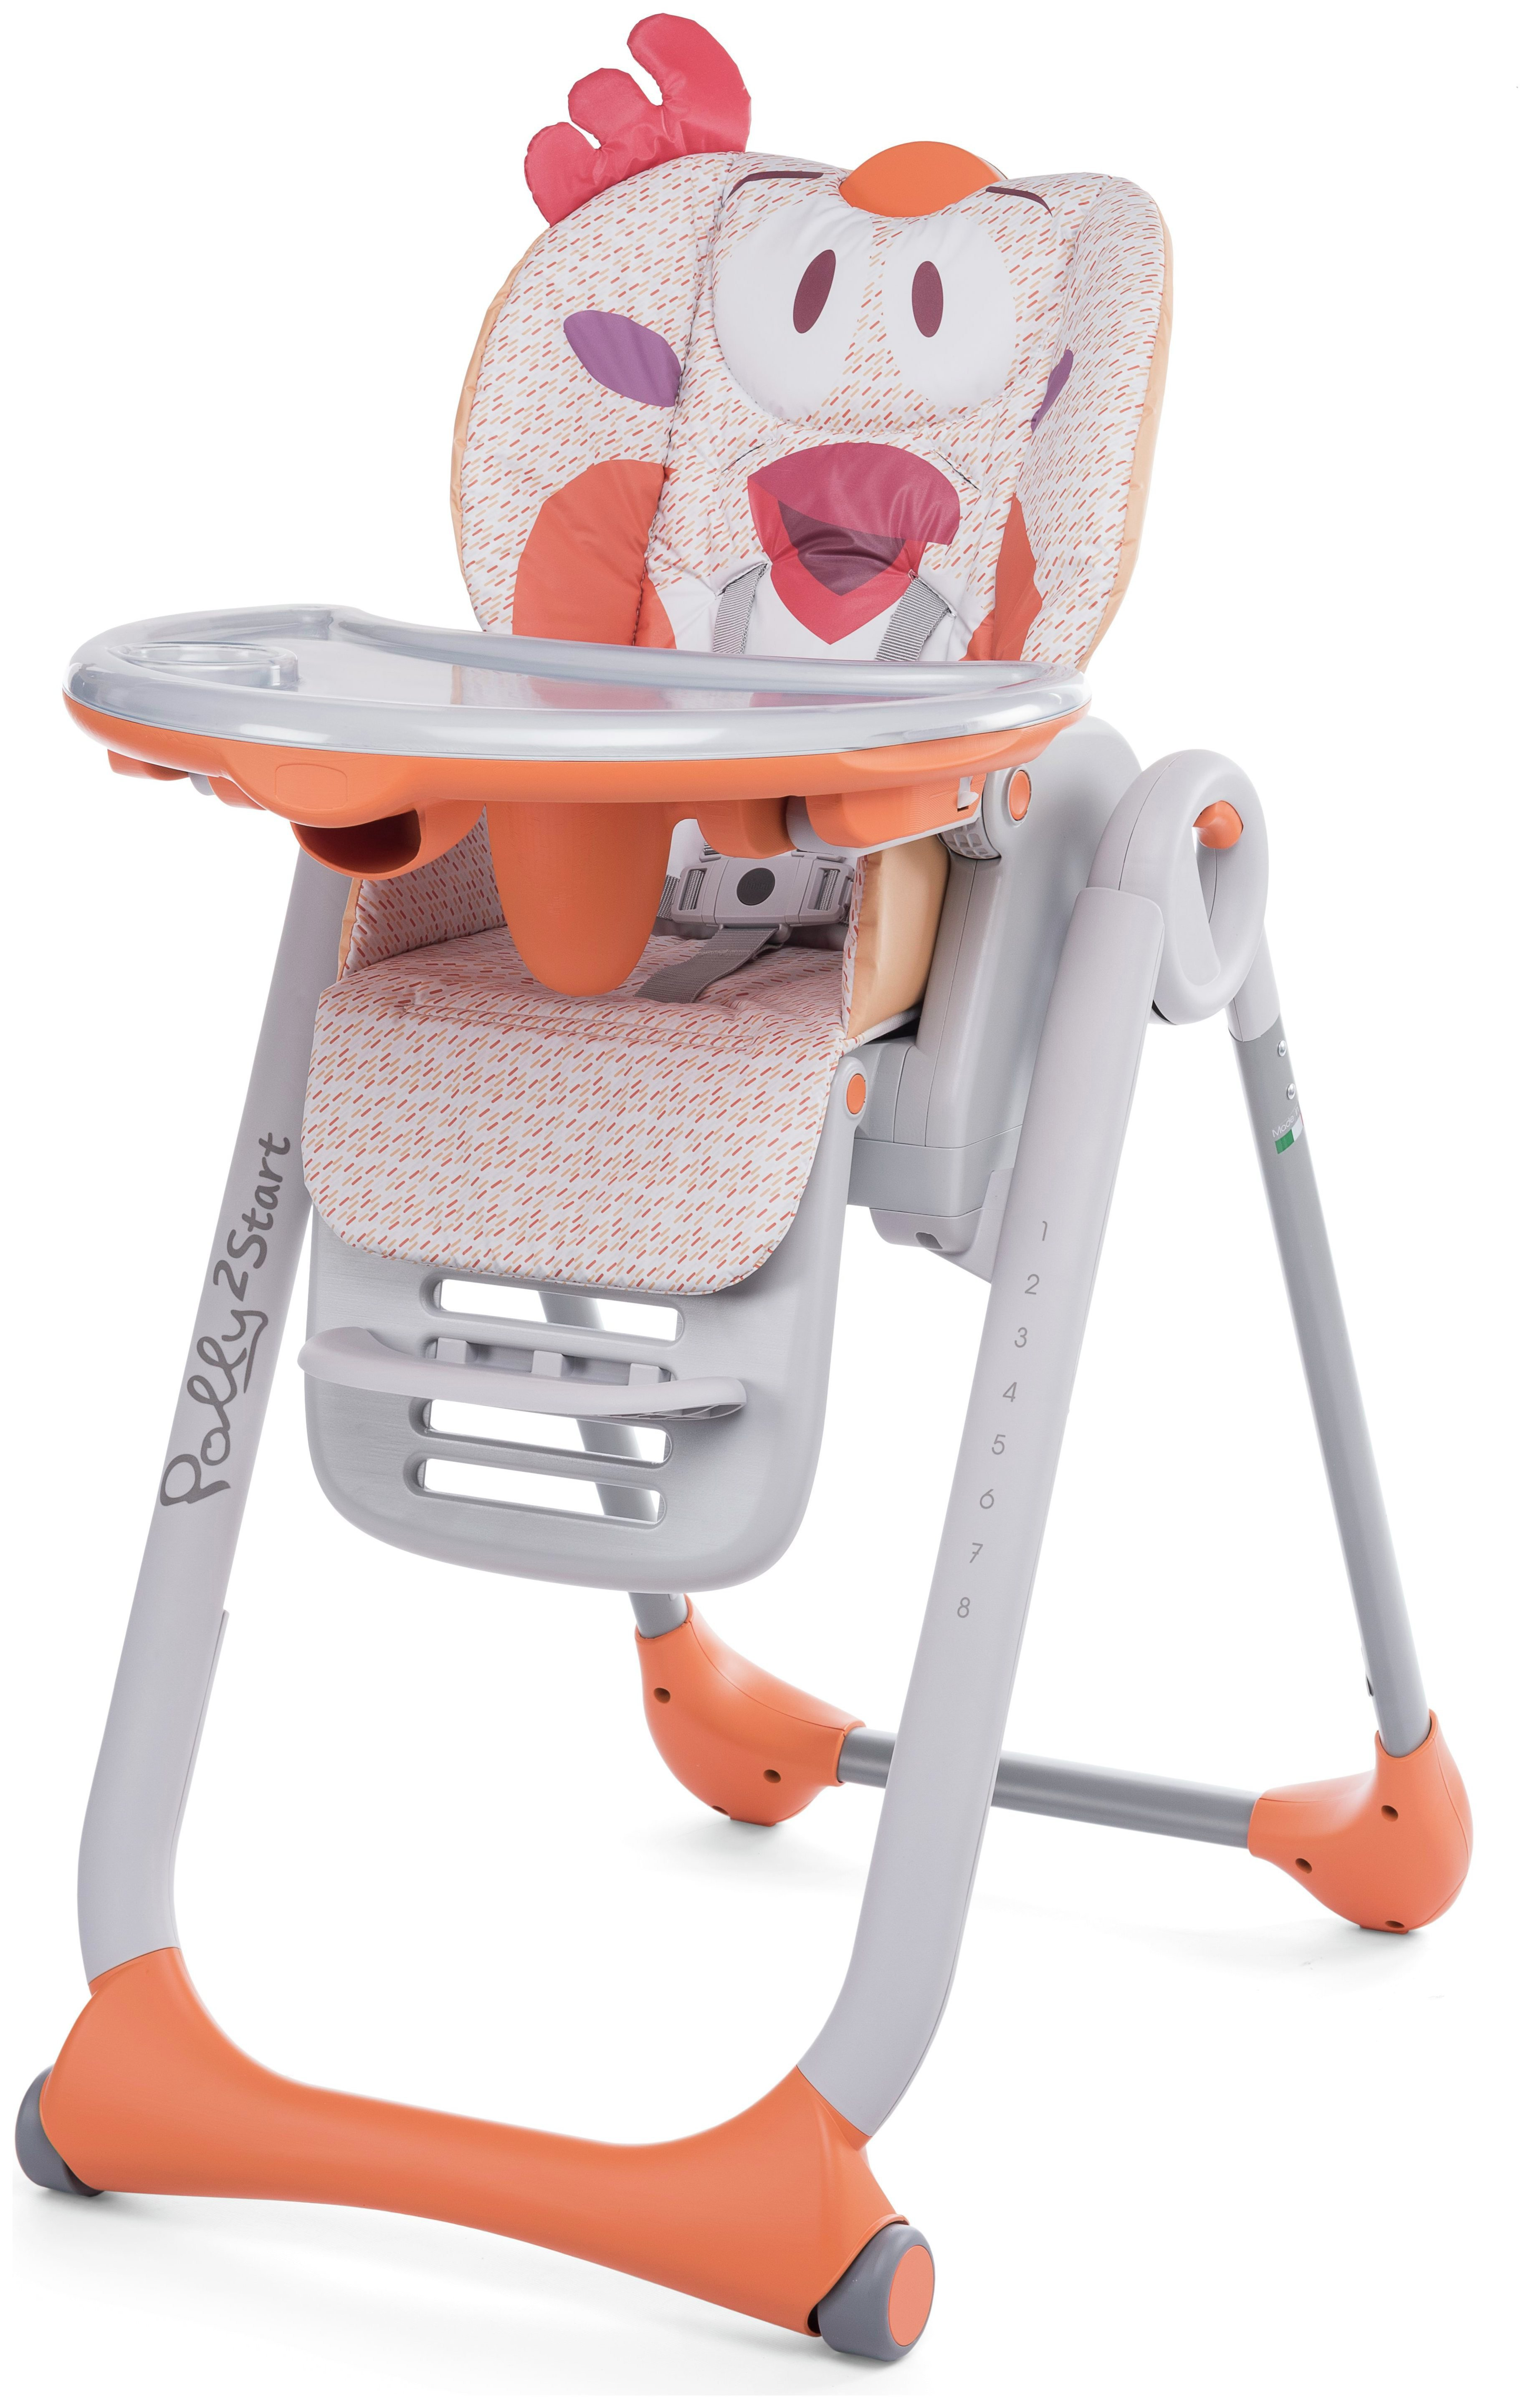 high chairs canada reviews antique wooden folding chicco polly2start fancy chicken chair review